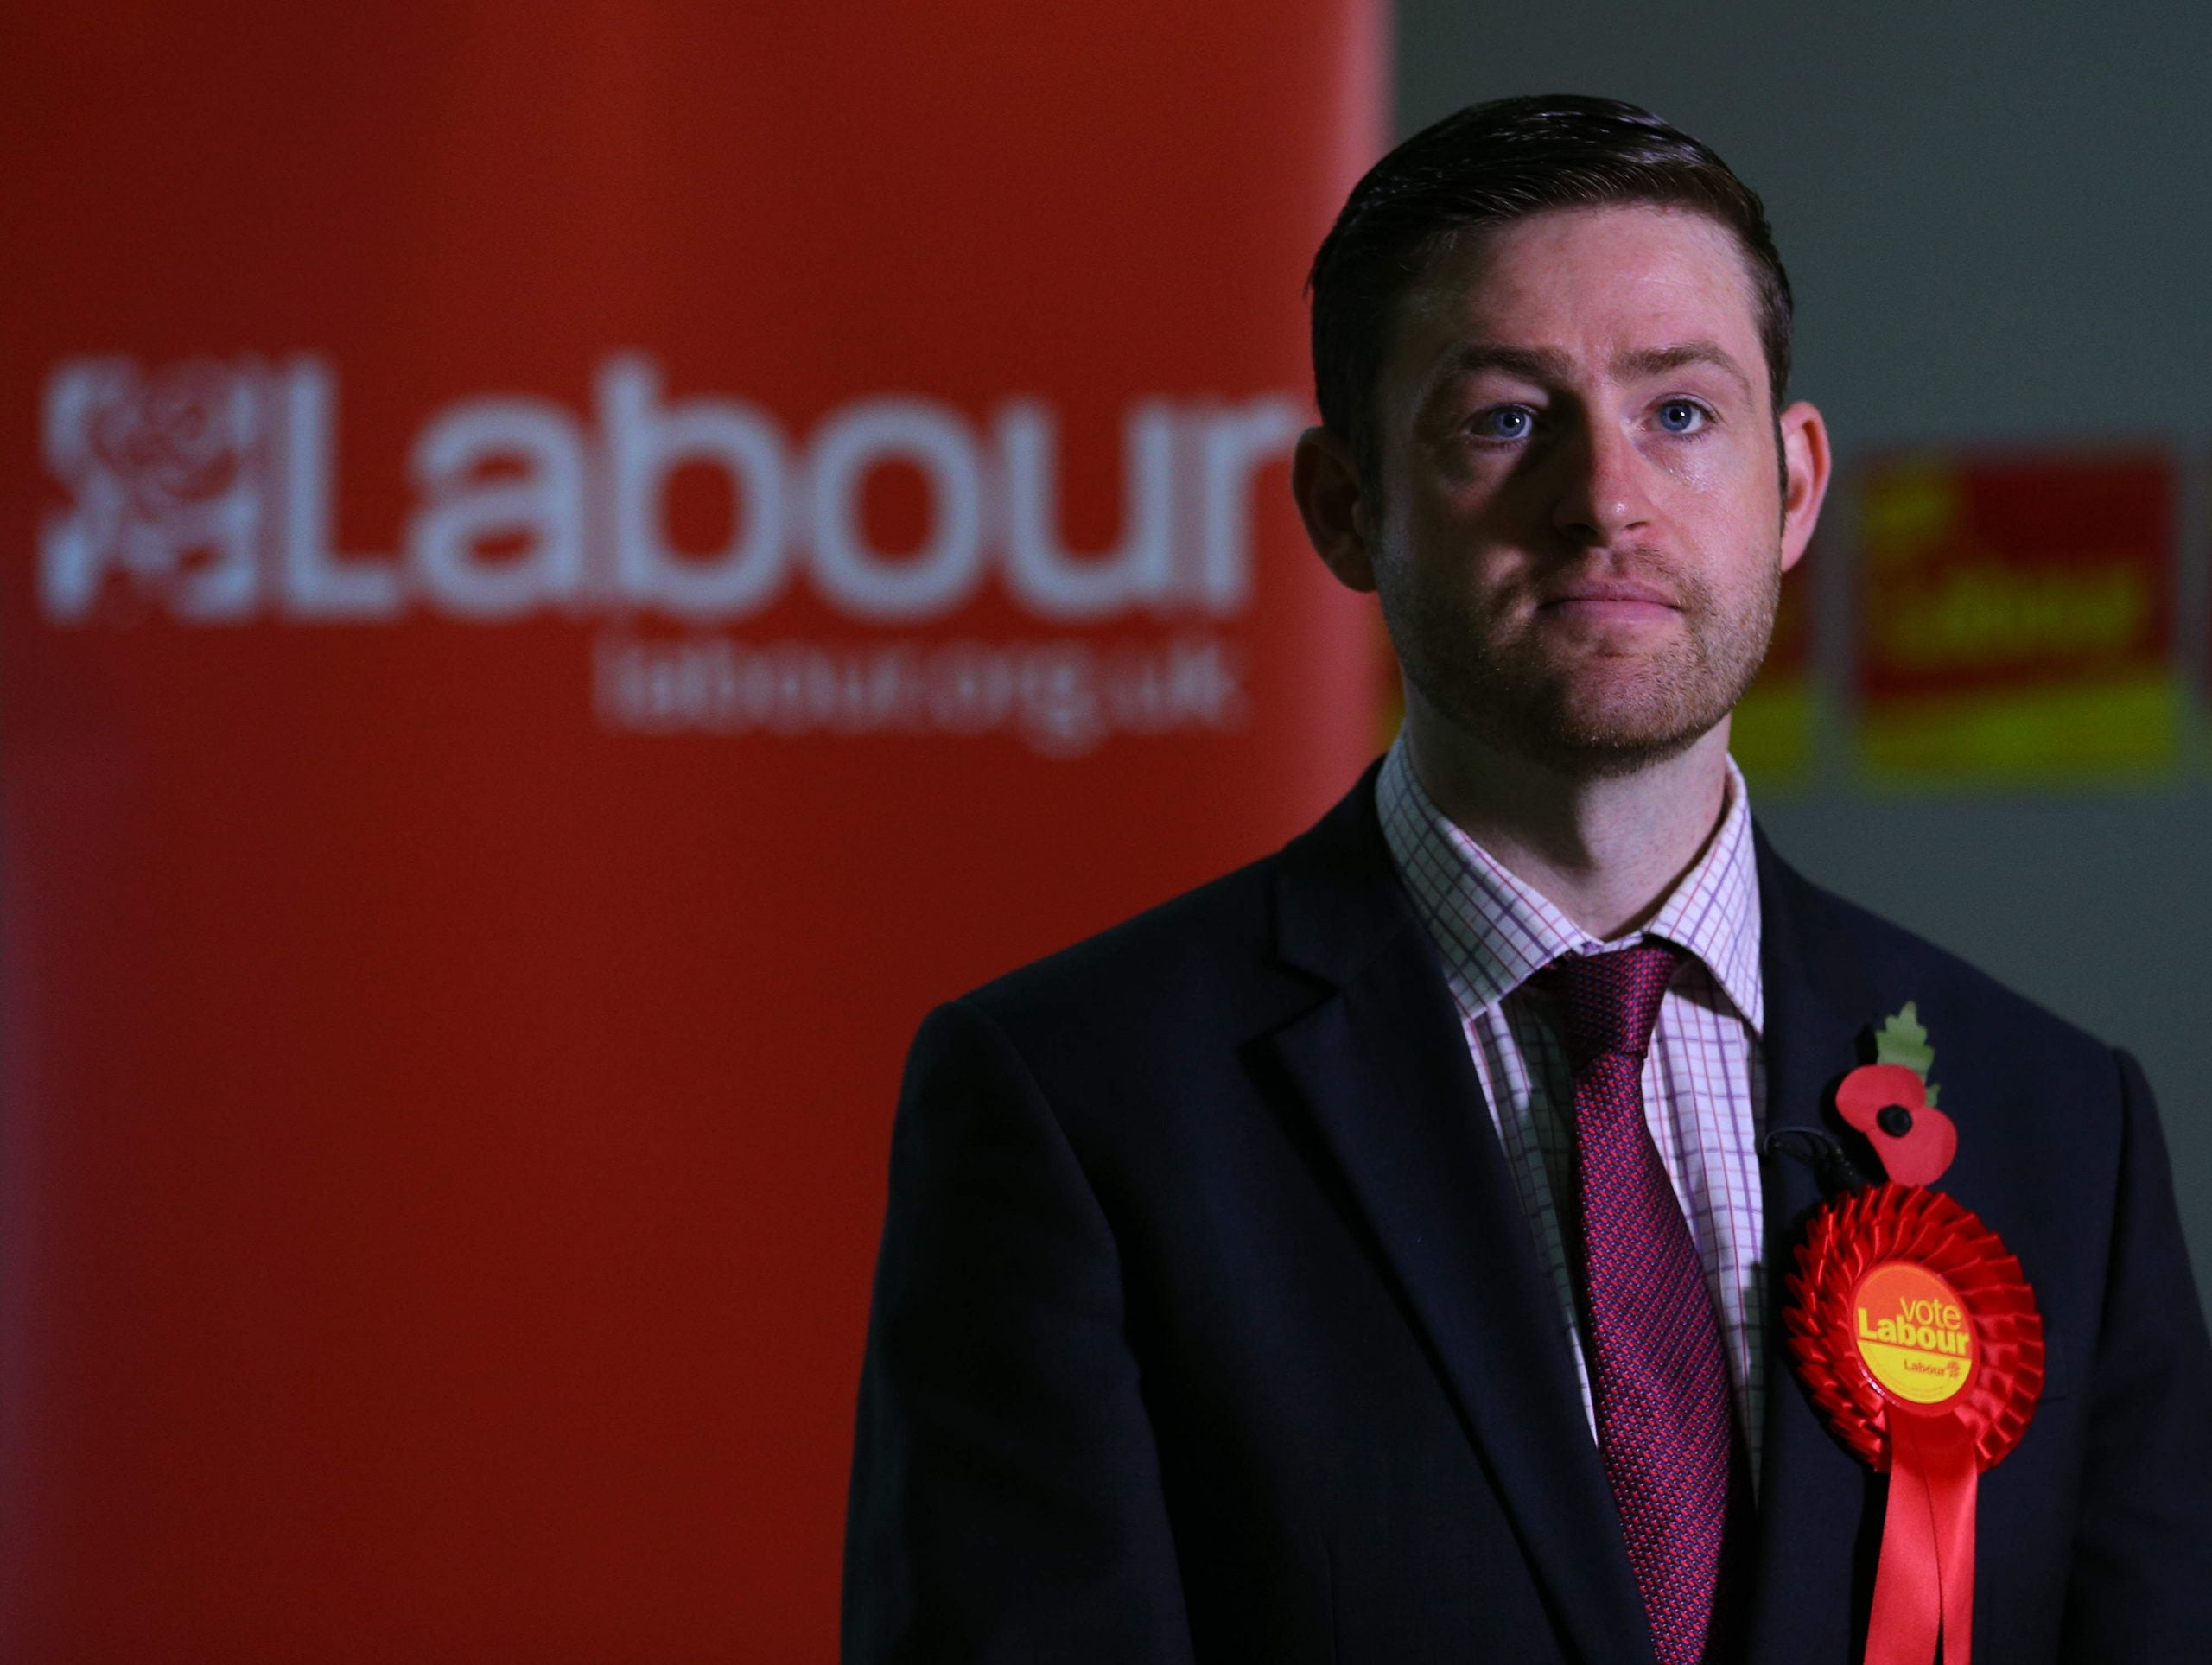 Labour's Oldham West victory proved a few enduring truths